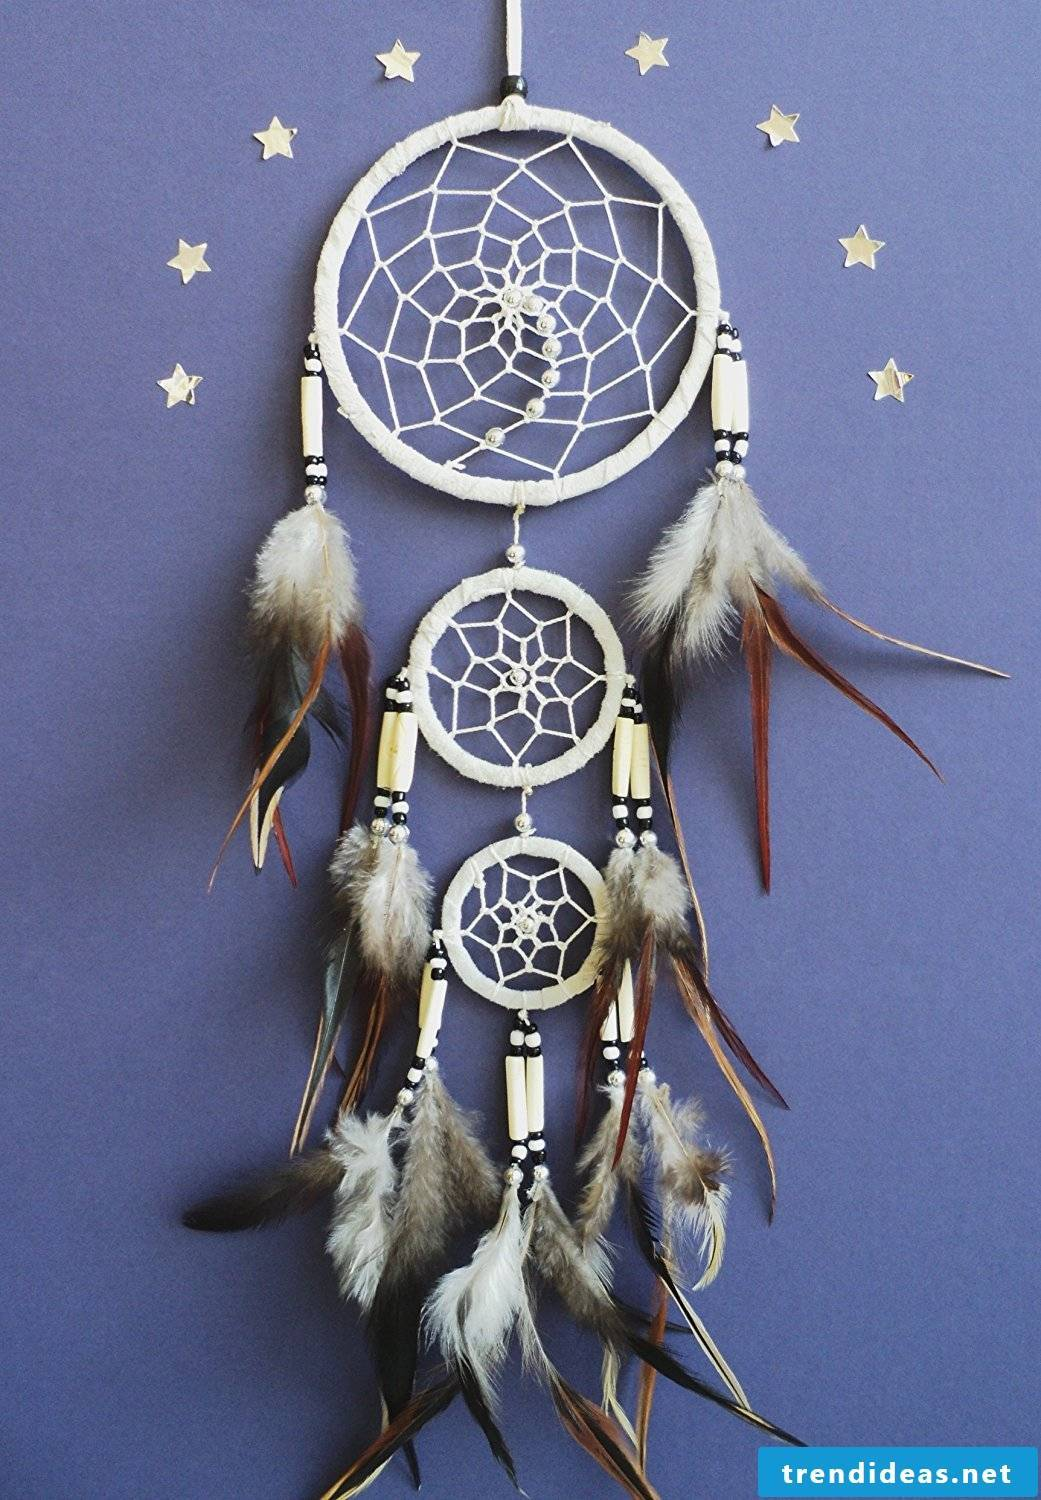 Dreamcatcher ideas Crafting with guaranteed results